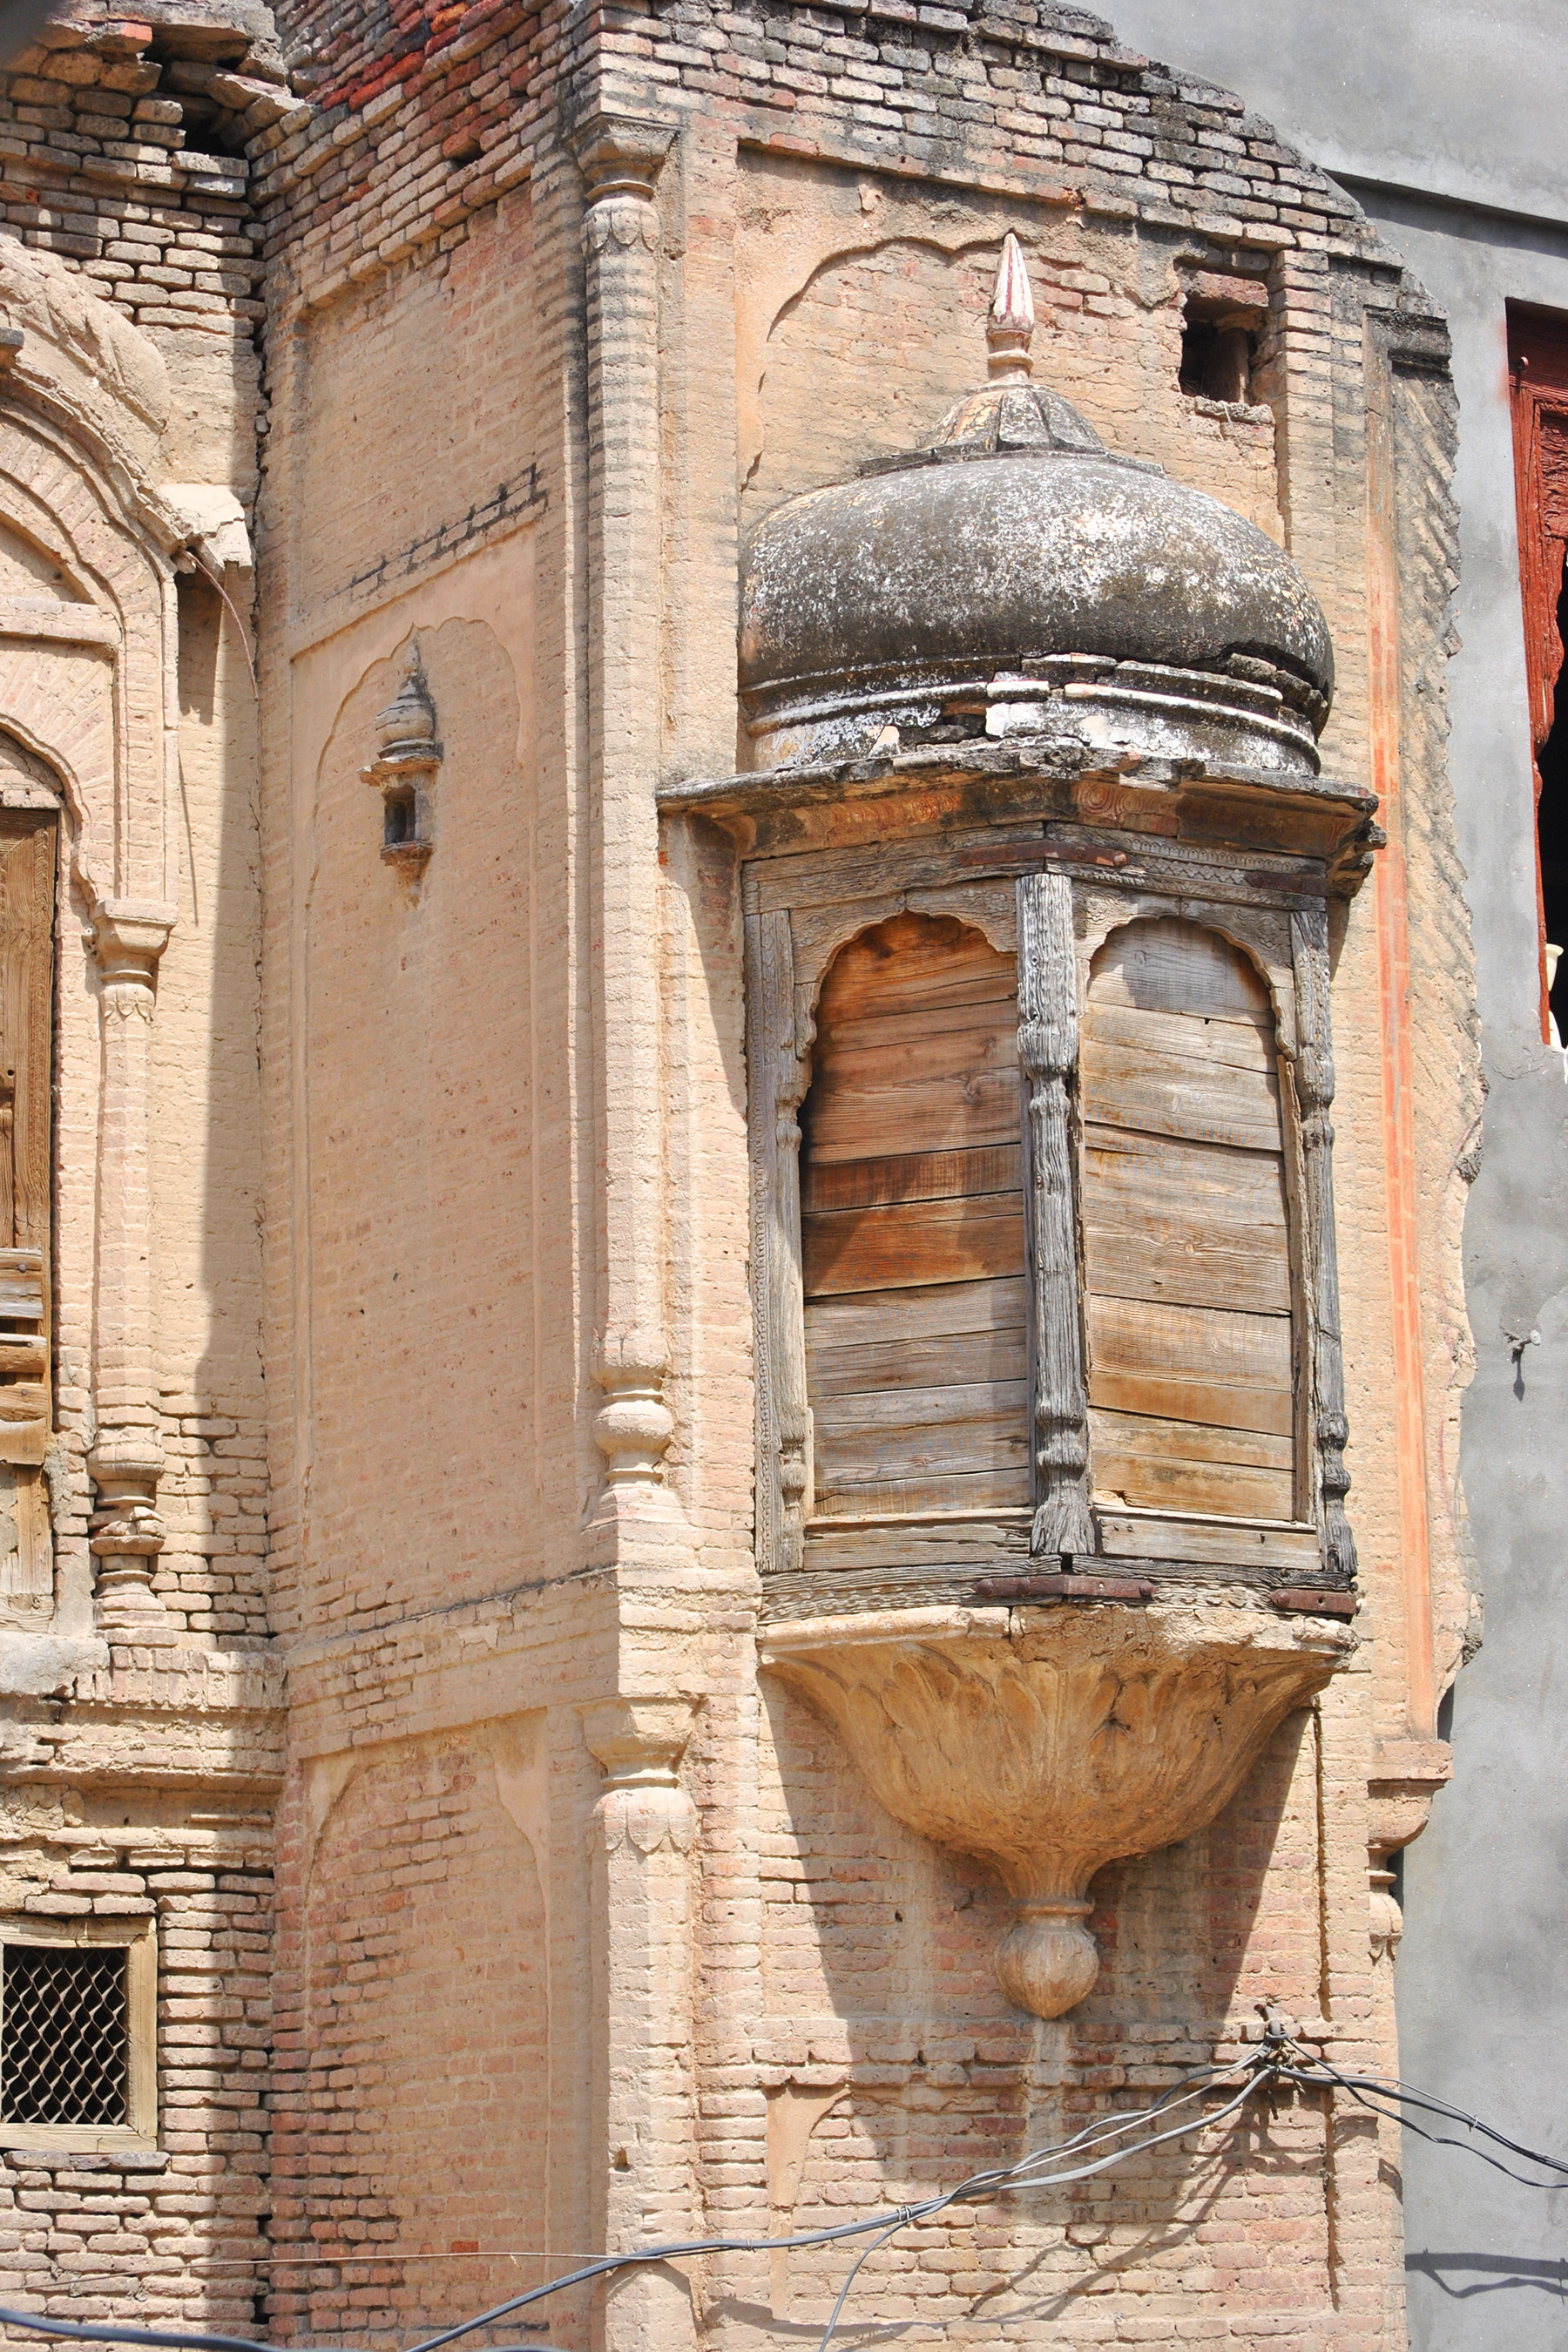 There are multi-cusped arches decorated with stucco and cut bricks and intricately carved jharokas, windows and doors.